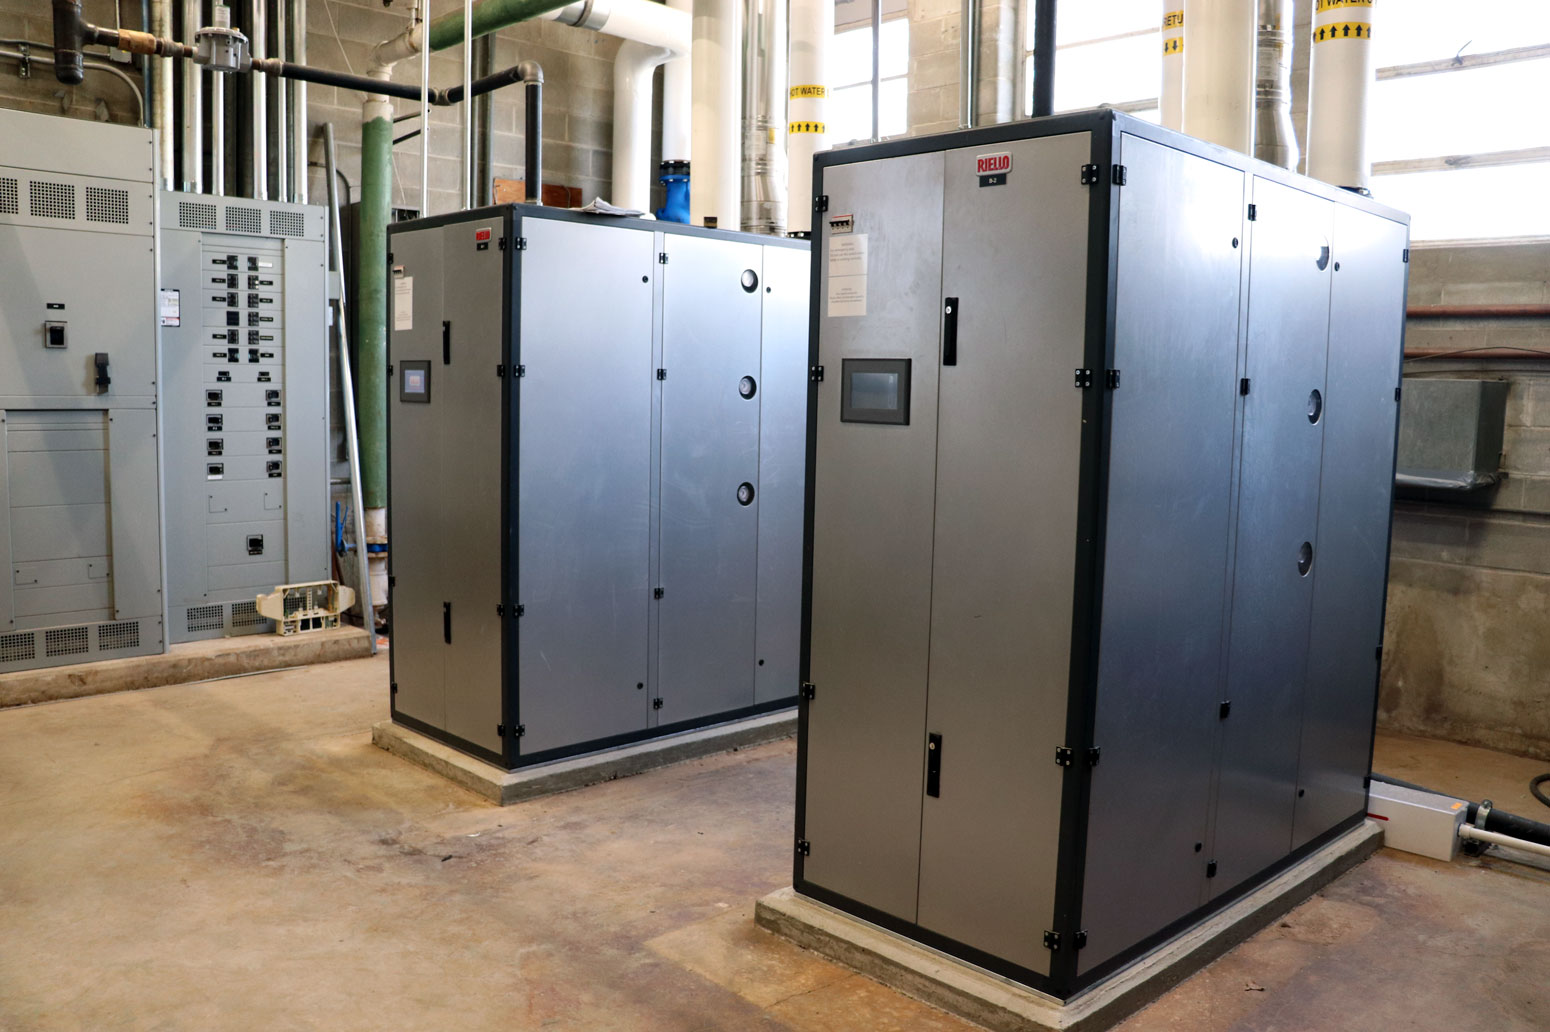 <b>New boilers were part of a retro-commissioning of the existing HVAC system at Shenandoah High School that resulted in a combination of new and existing hardware, and a budget savings of $500,000. </b>(CANCO photo)